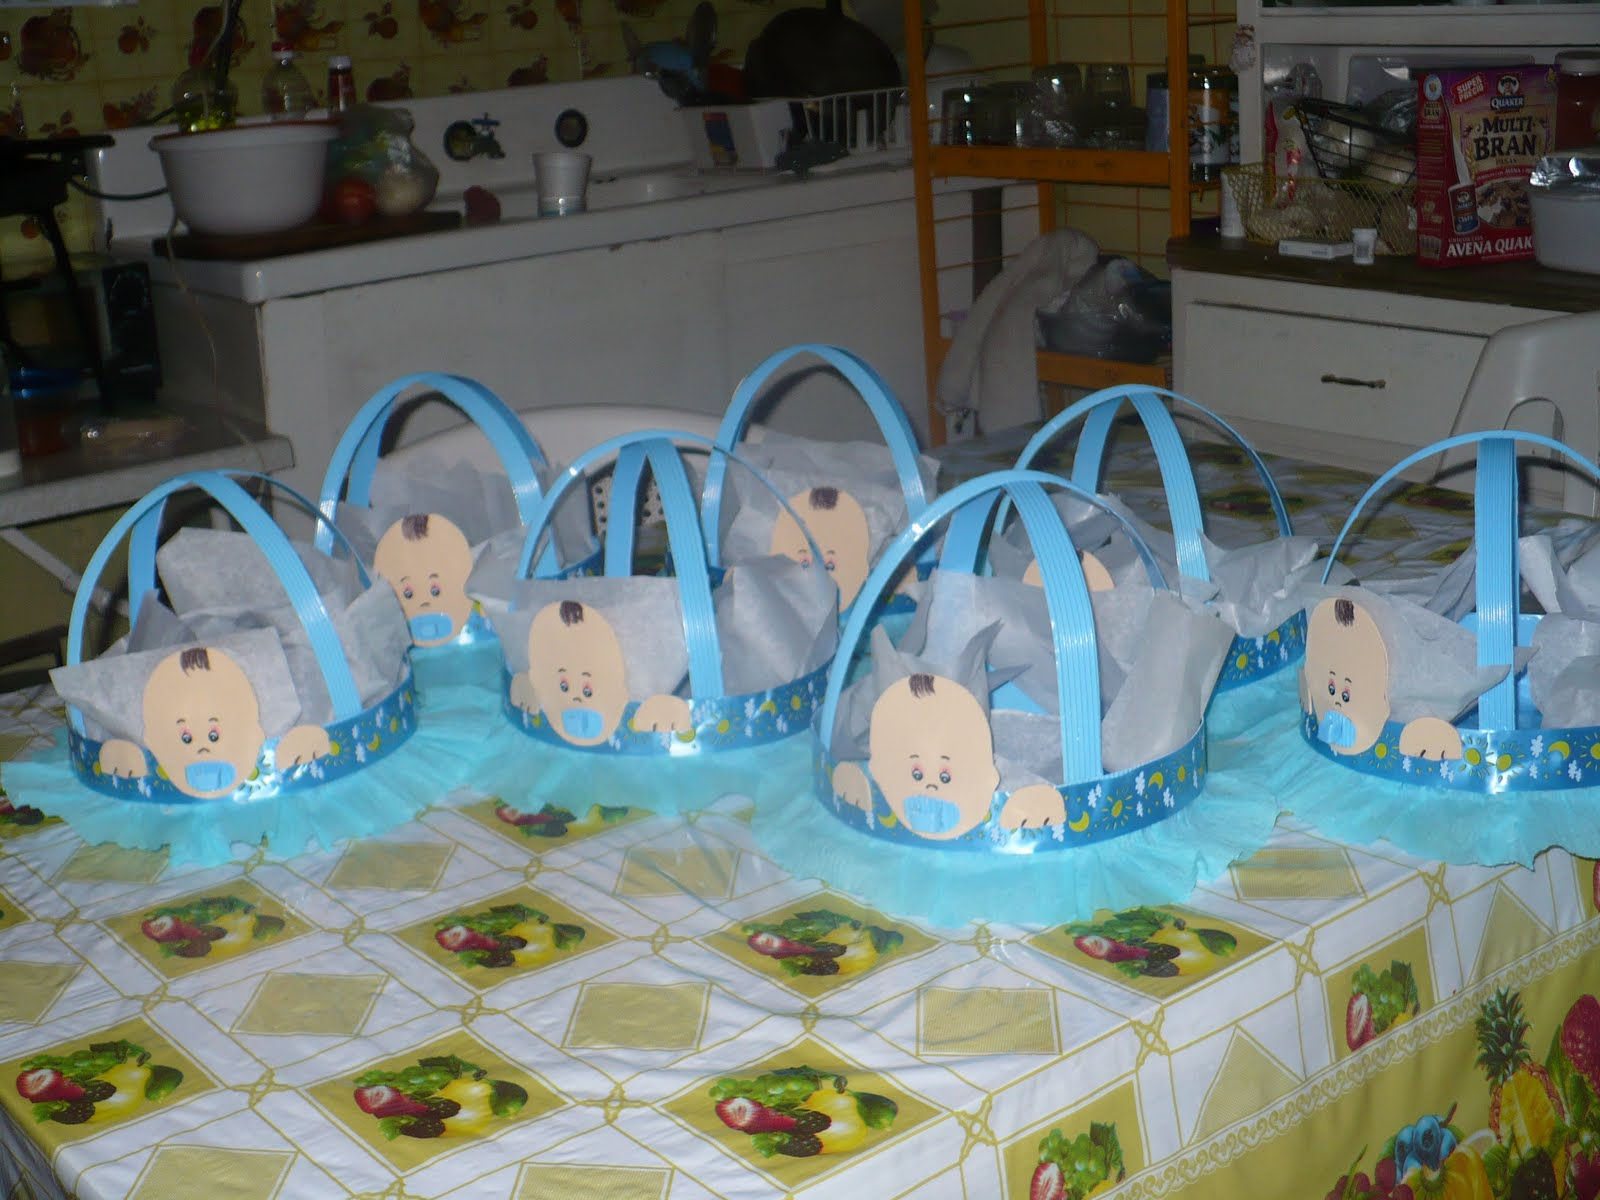 Arreglos nuevos para baby shower imagui for Centro de mesa baby shower